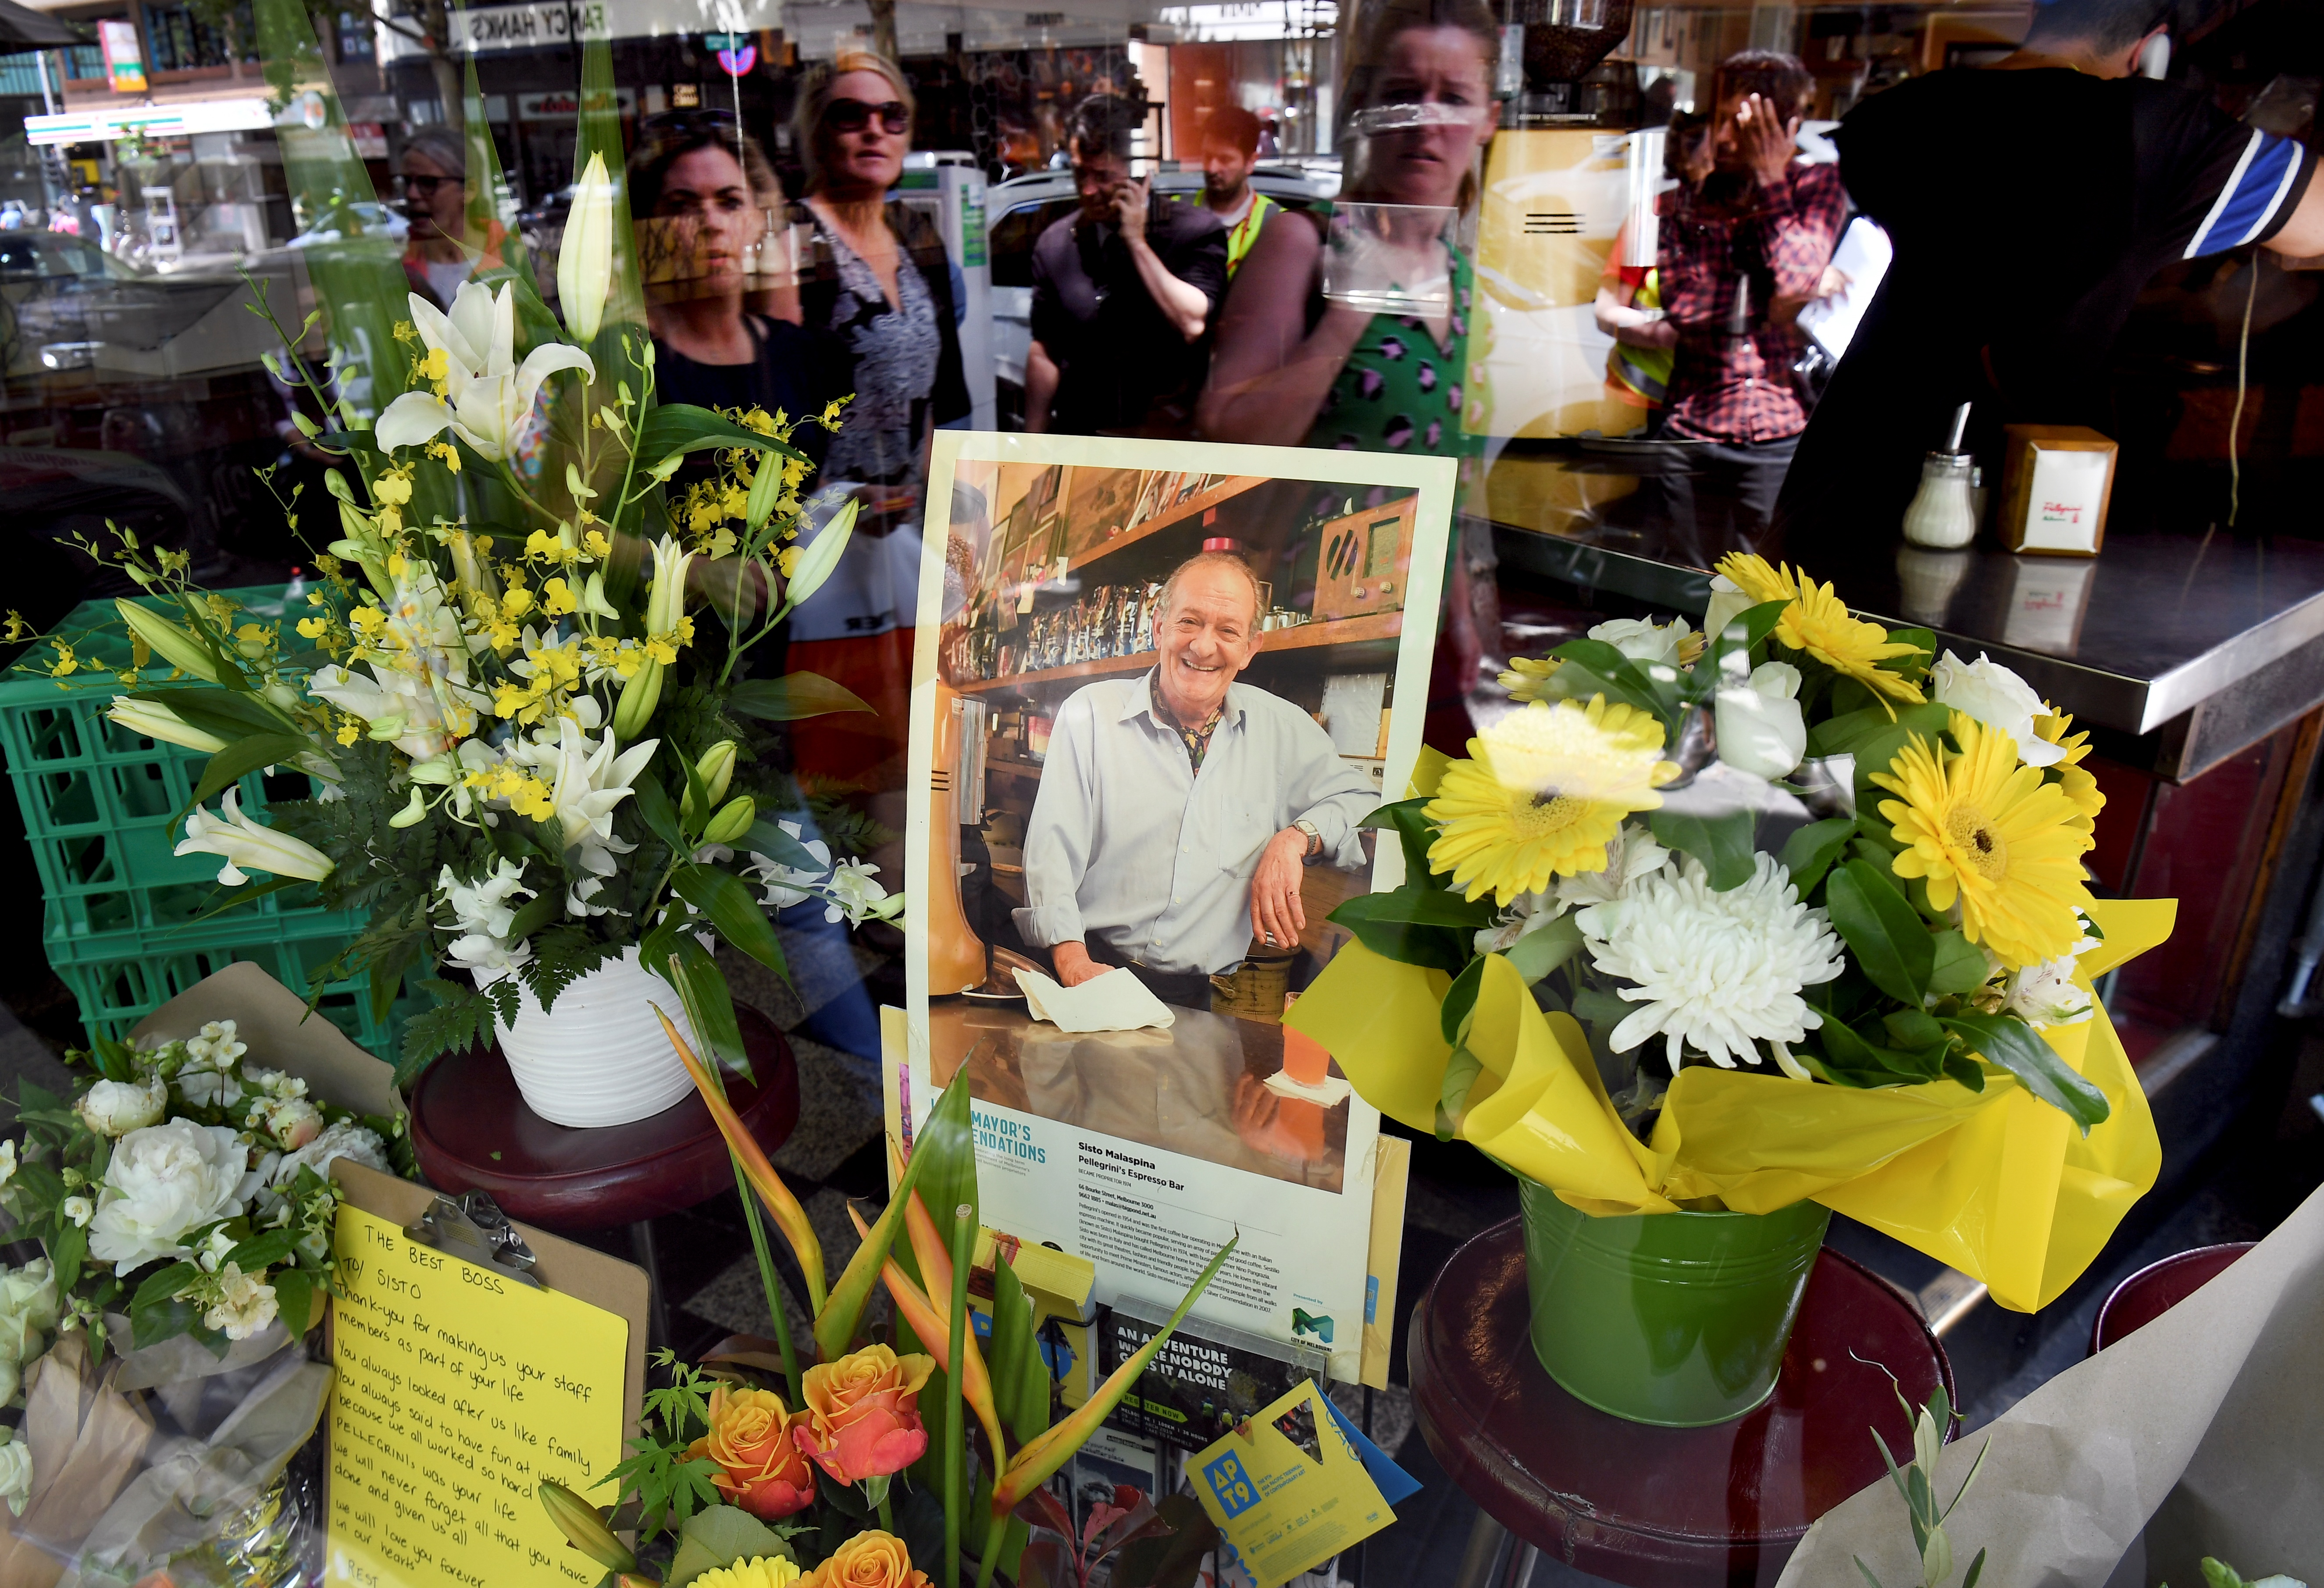 People pay their respects for Sisto Malaspina, who was killed Nov. 9, 2018, in a stabbing attack in Melbourne. Malaspina, 74, an icon of Melbourne's thriving culinary culture, was killed by Somali-born Australian Hassan Khalif Shire Ali.